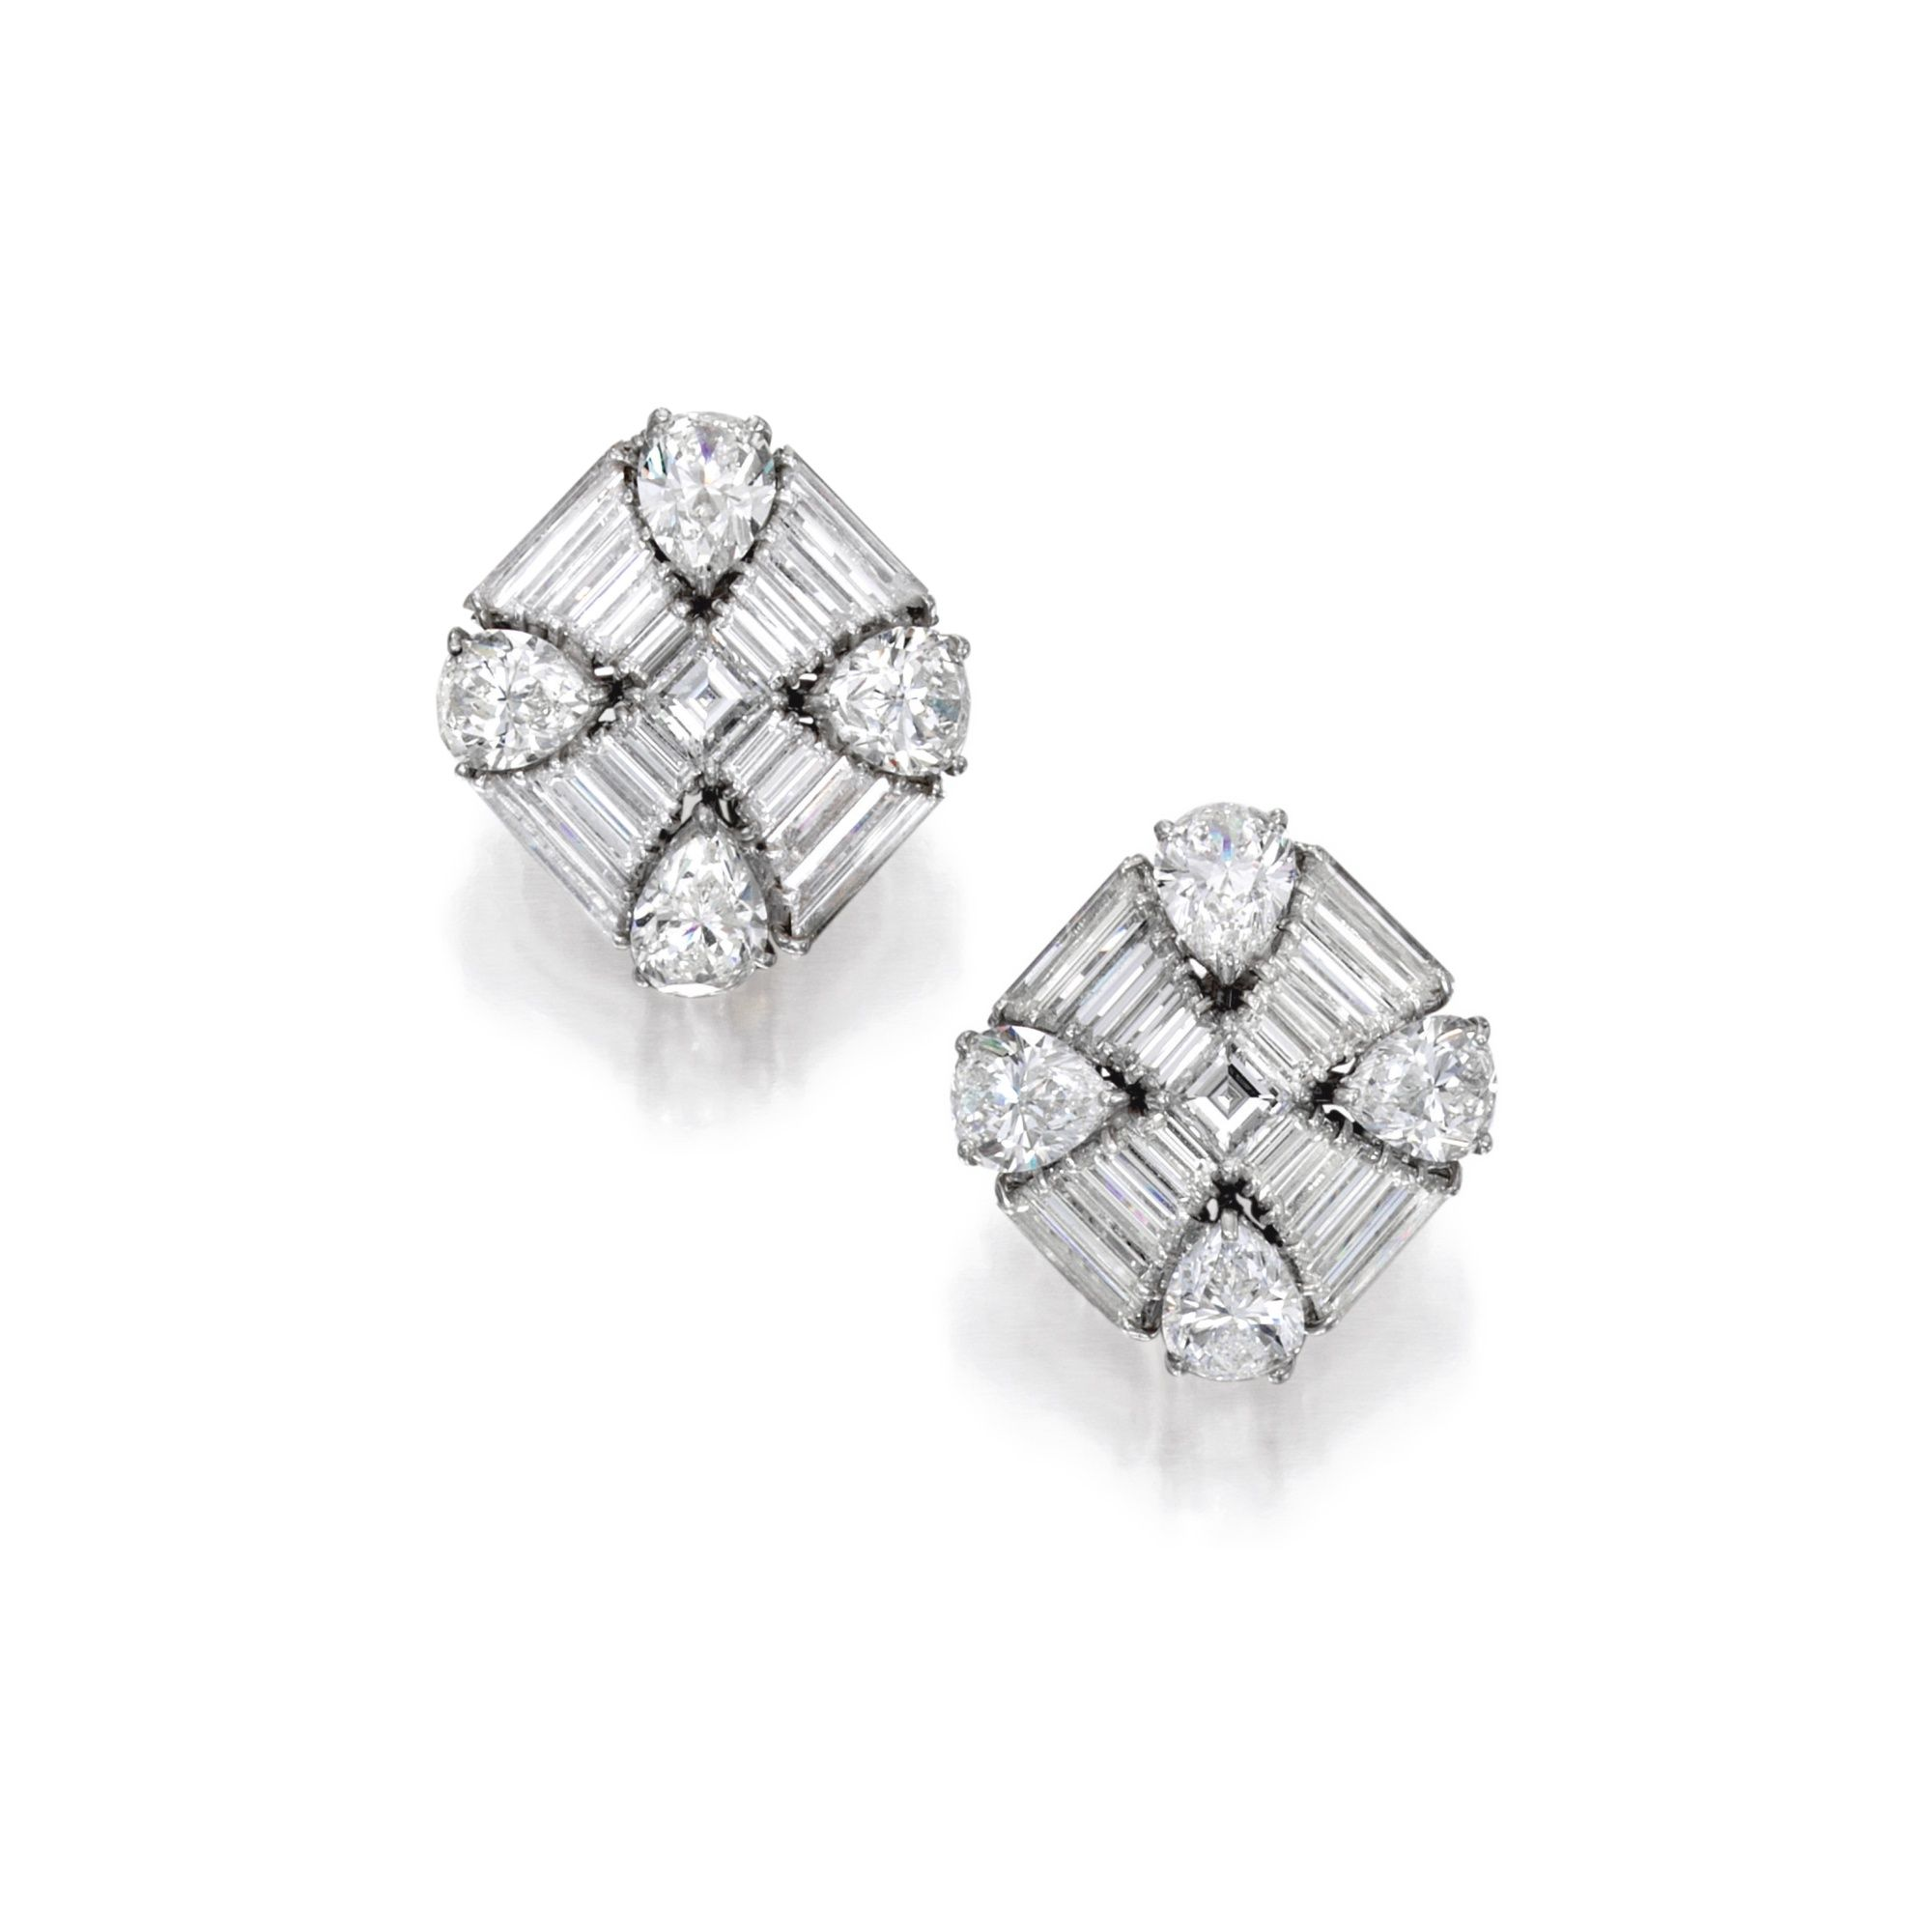 e935b3601 Pair of Platinum and Diamond Earclips, Harry Winston The square-shaped  designs set with